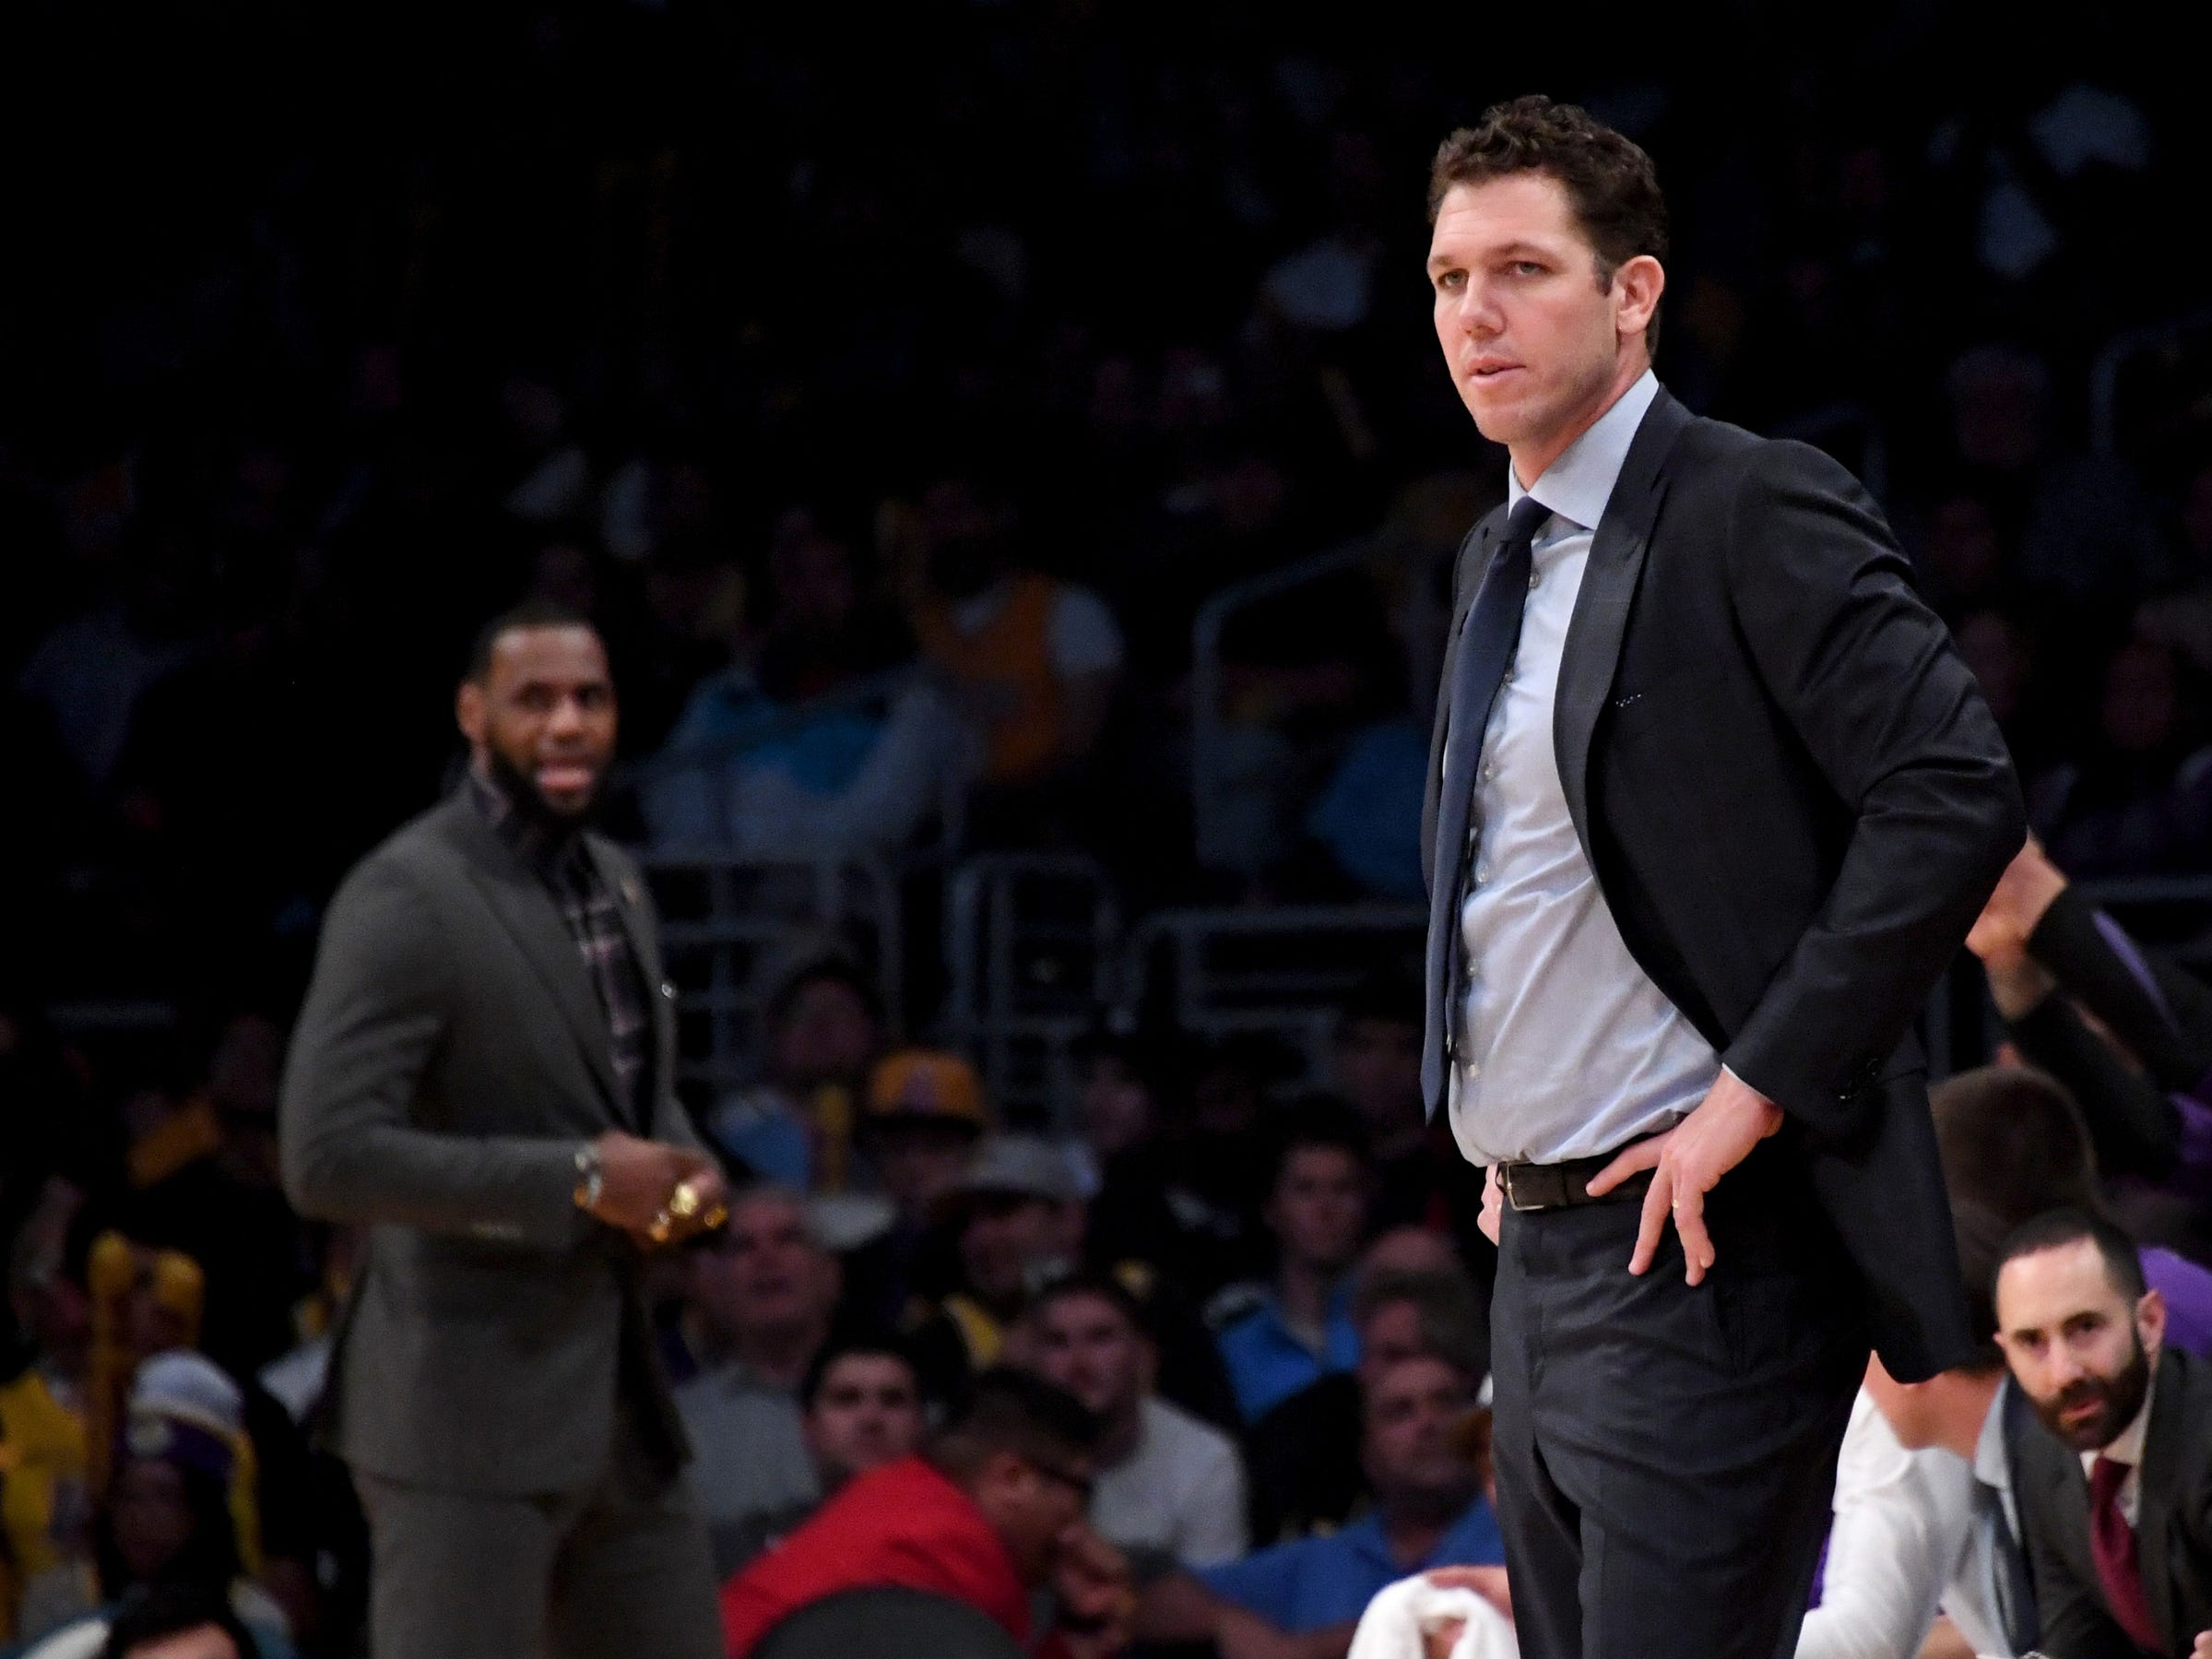 Los Angeles Lakers head coach Luke Walton (right) watches during the second half against the Detroit Pistons at the Staples Center on Wednesday, Jan. 9, 2019, in Los Angeles.